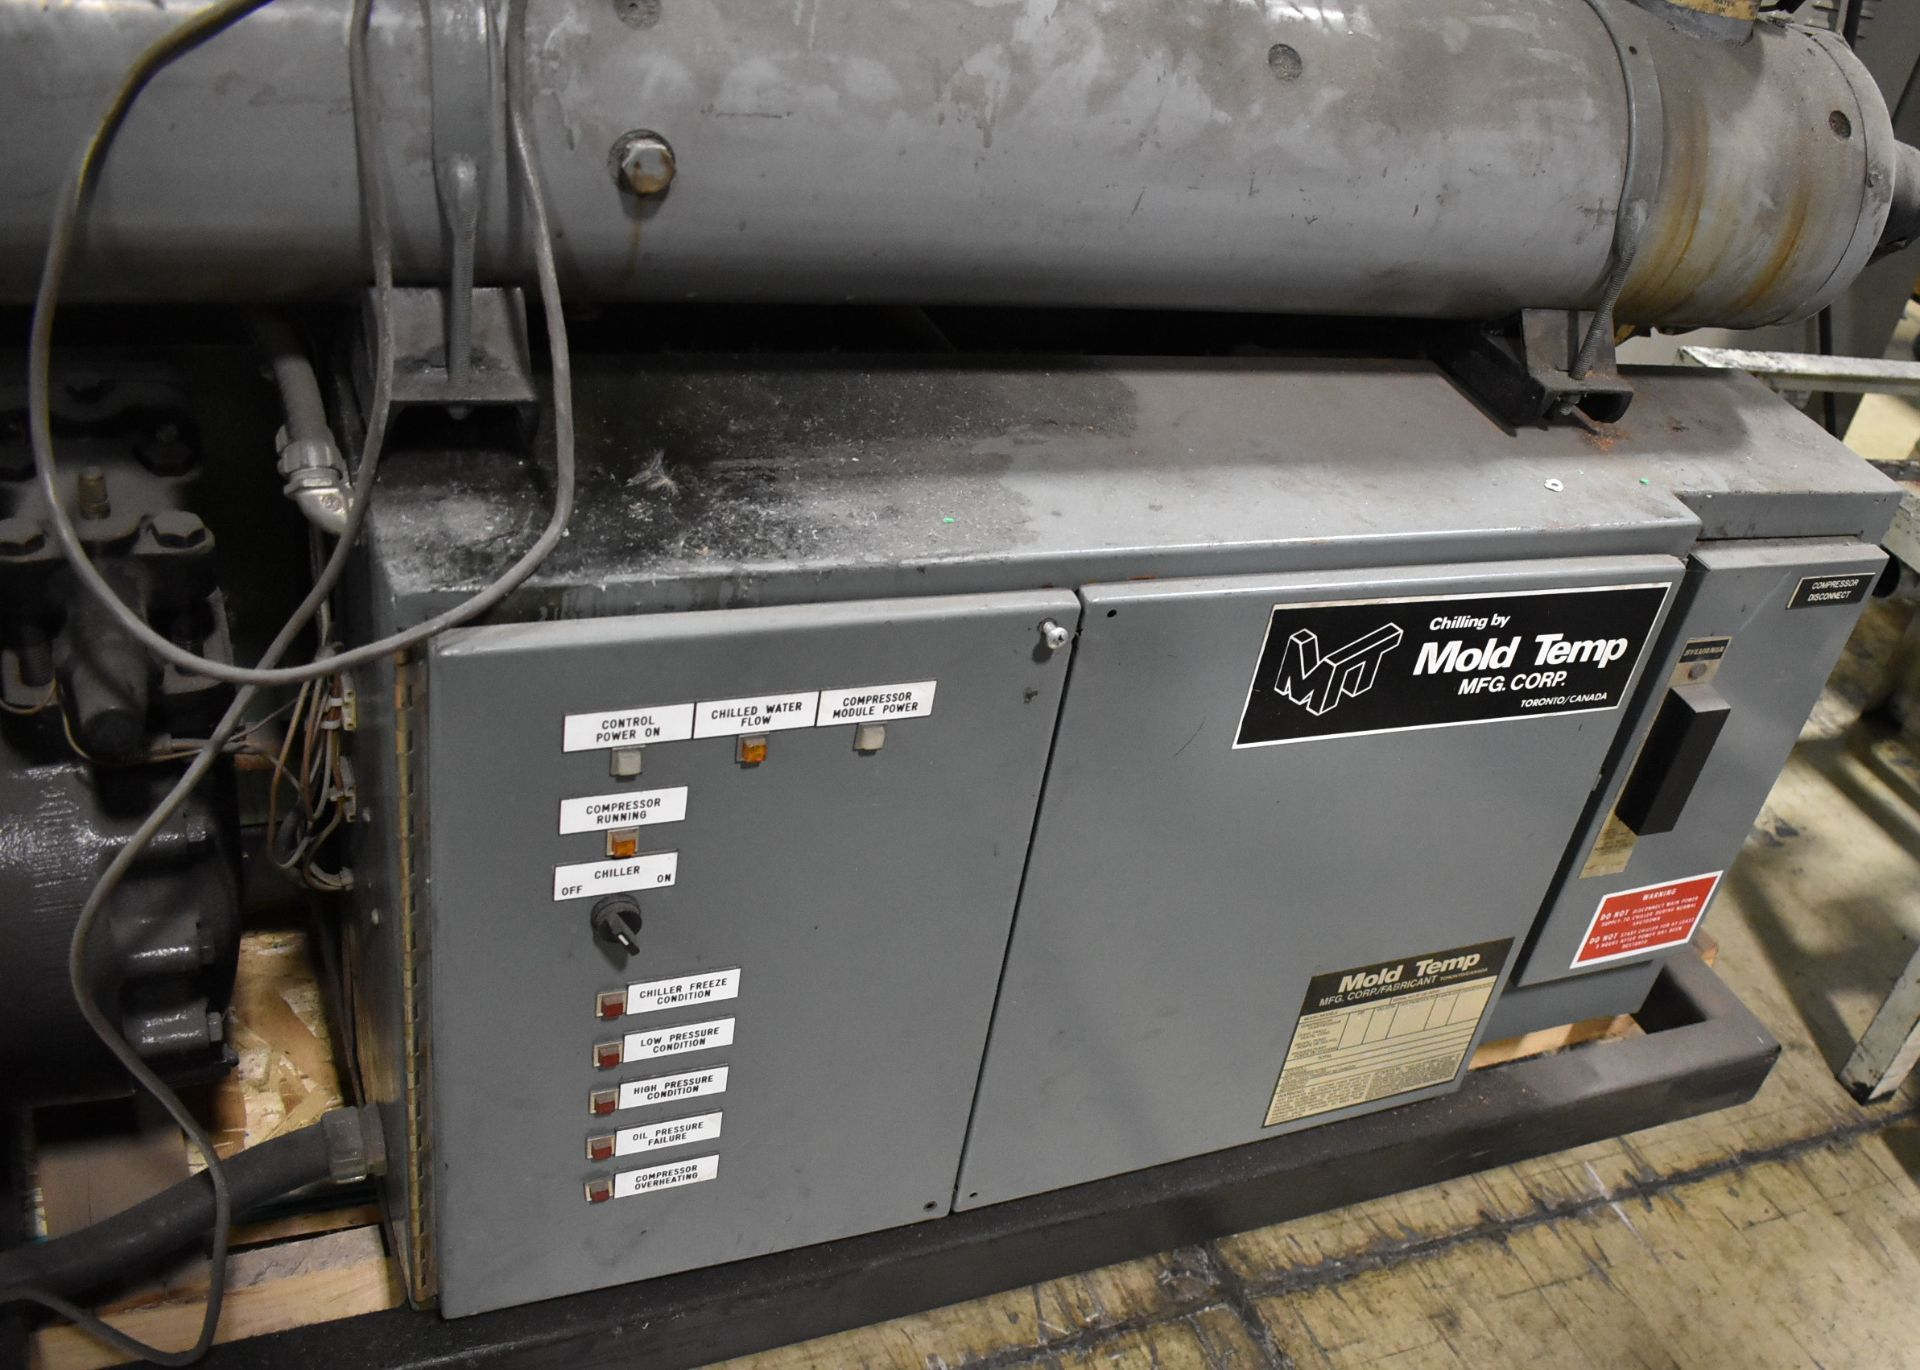 MOLD TEMP MAC-30-C 30 HP CHILLER UNIT, S/N: 05-01-001 (CI) (LOCATED IN BRAMPTON, ON) [RIGGING FEES - Image 3 of 4